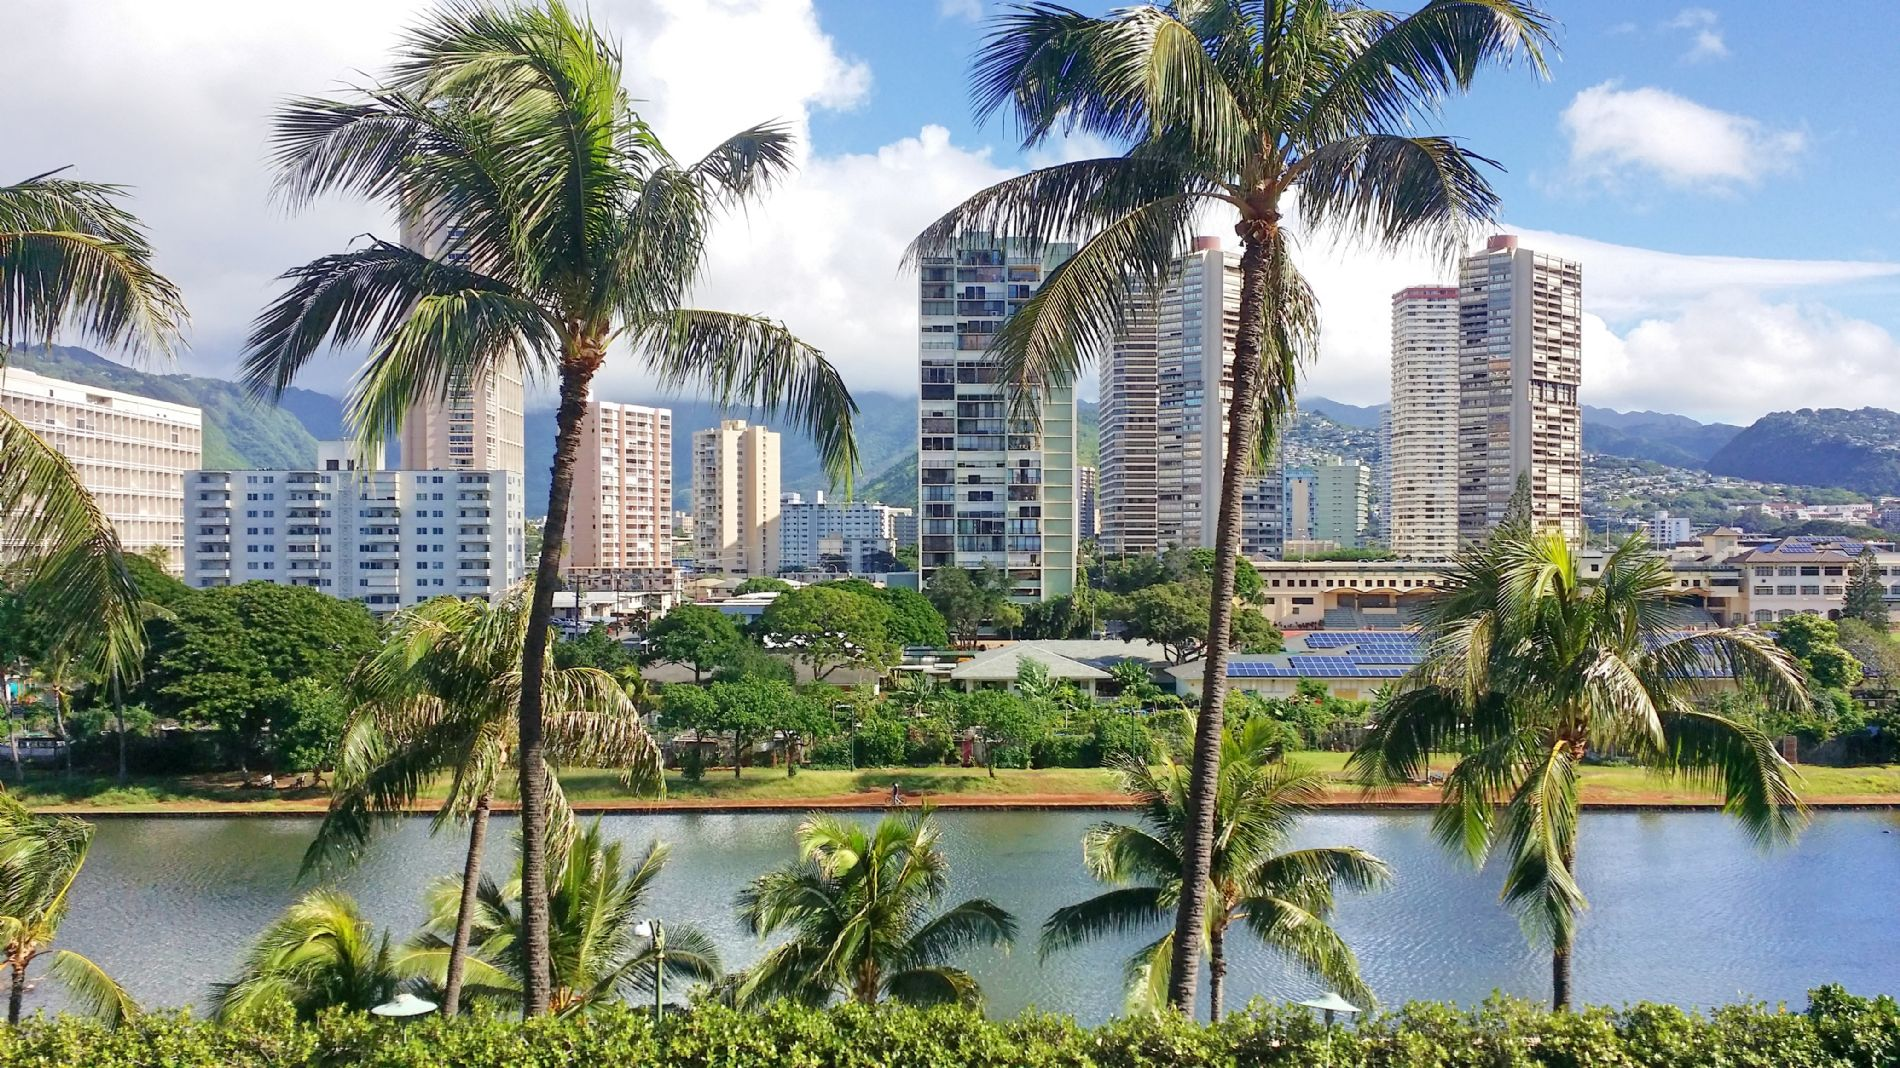 Fully renovated 2 Bedroom unit in Waikiki, Great location, Excellent